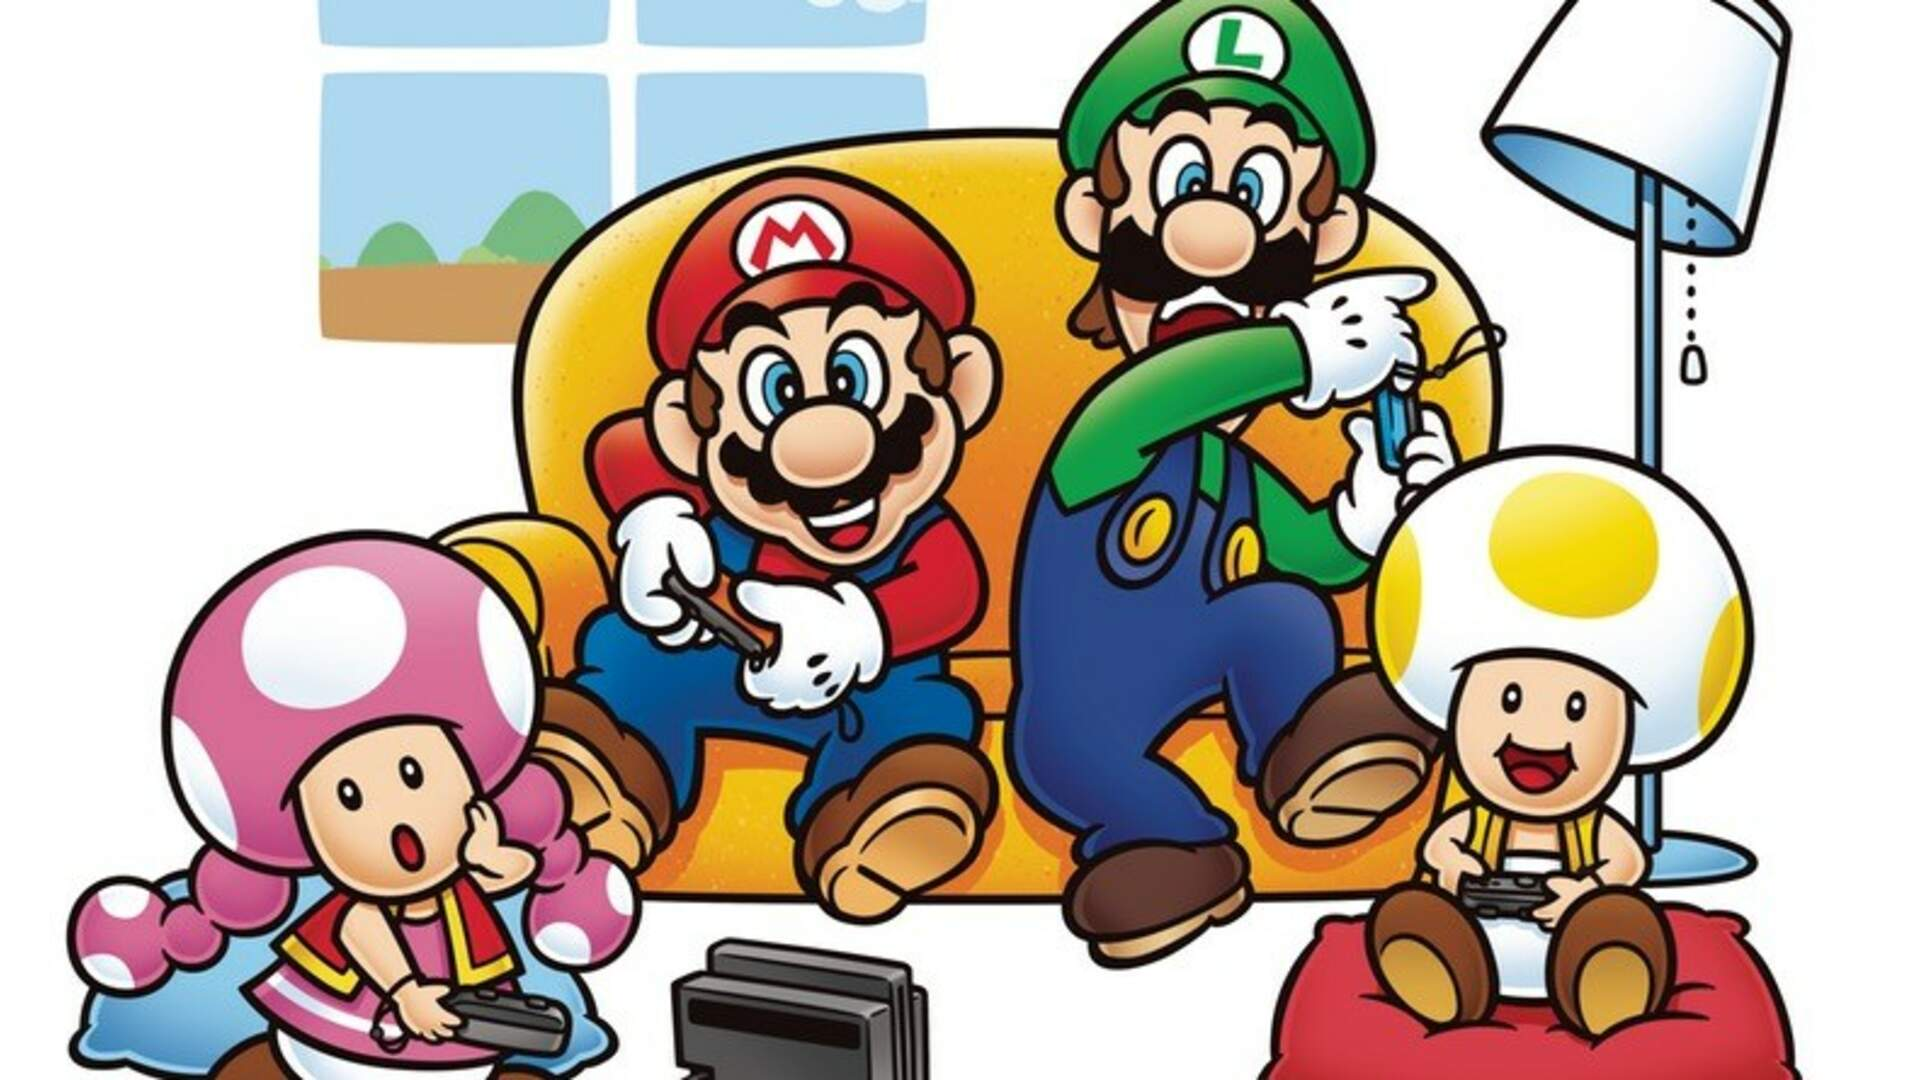 What's Your Favorite Game to Play With Family?